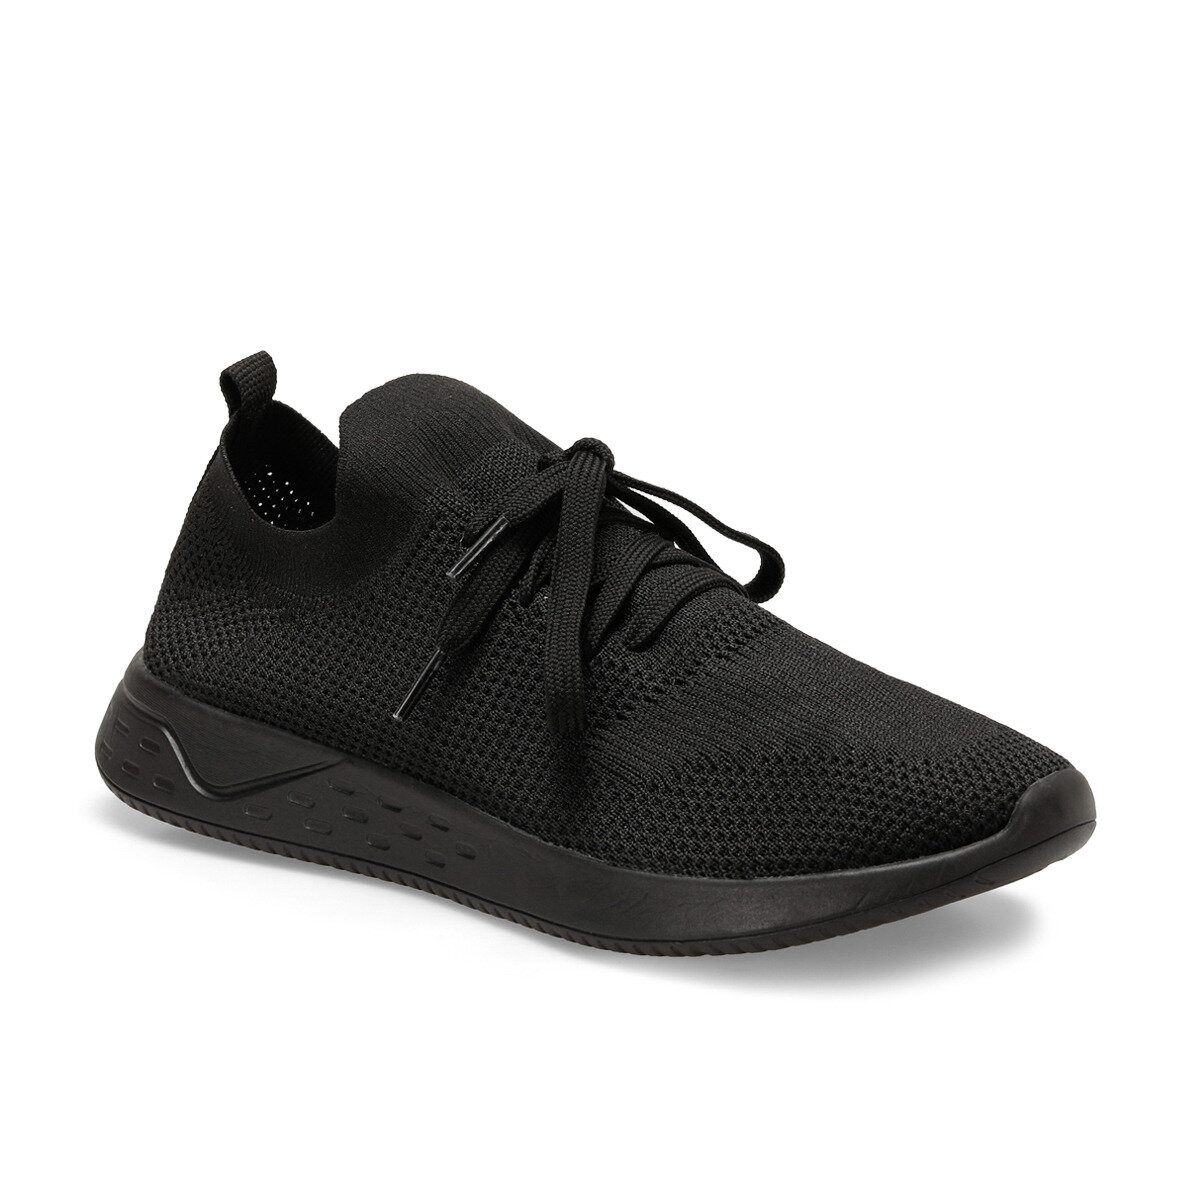 FLO Men's Sneakers Black Male Sports Shoes For Men Forester ONR-1 C